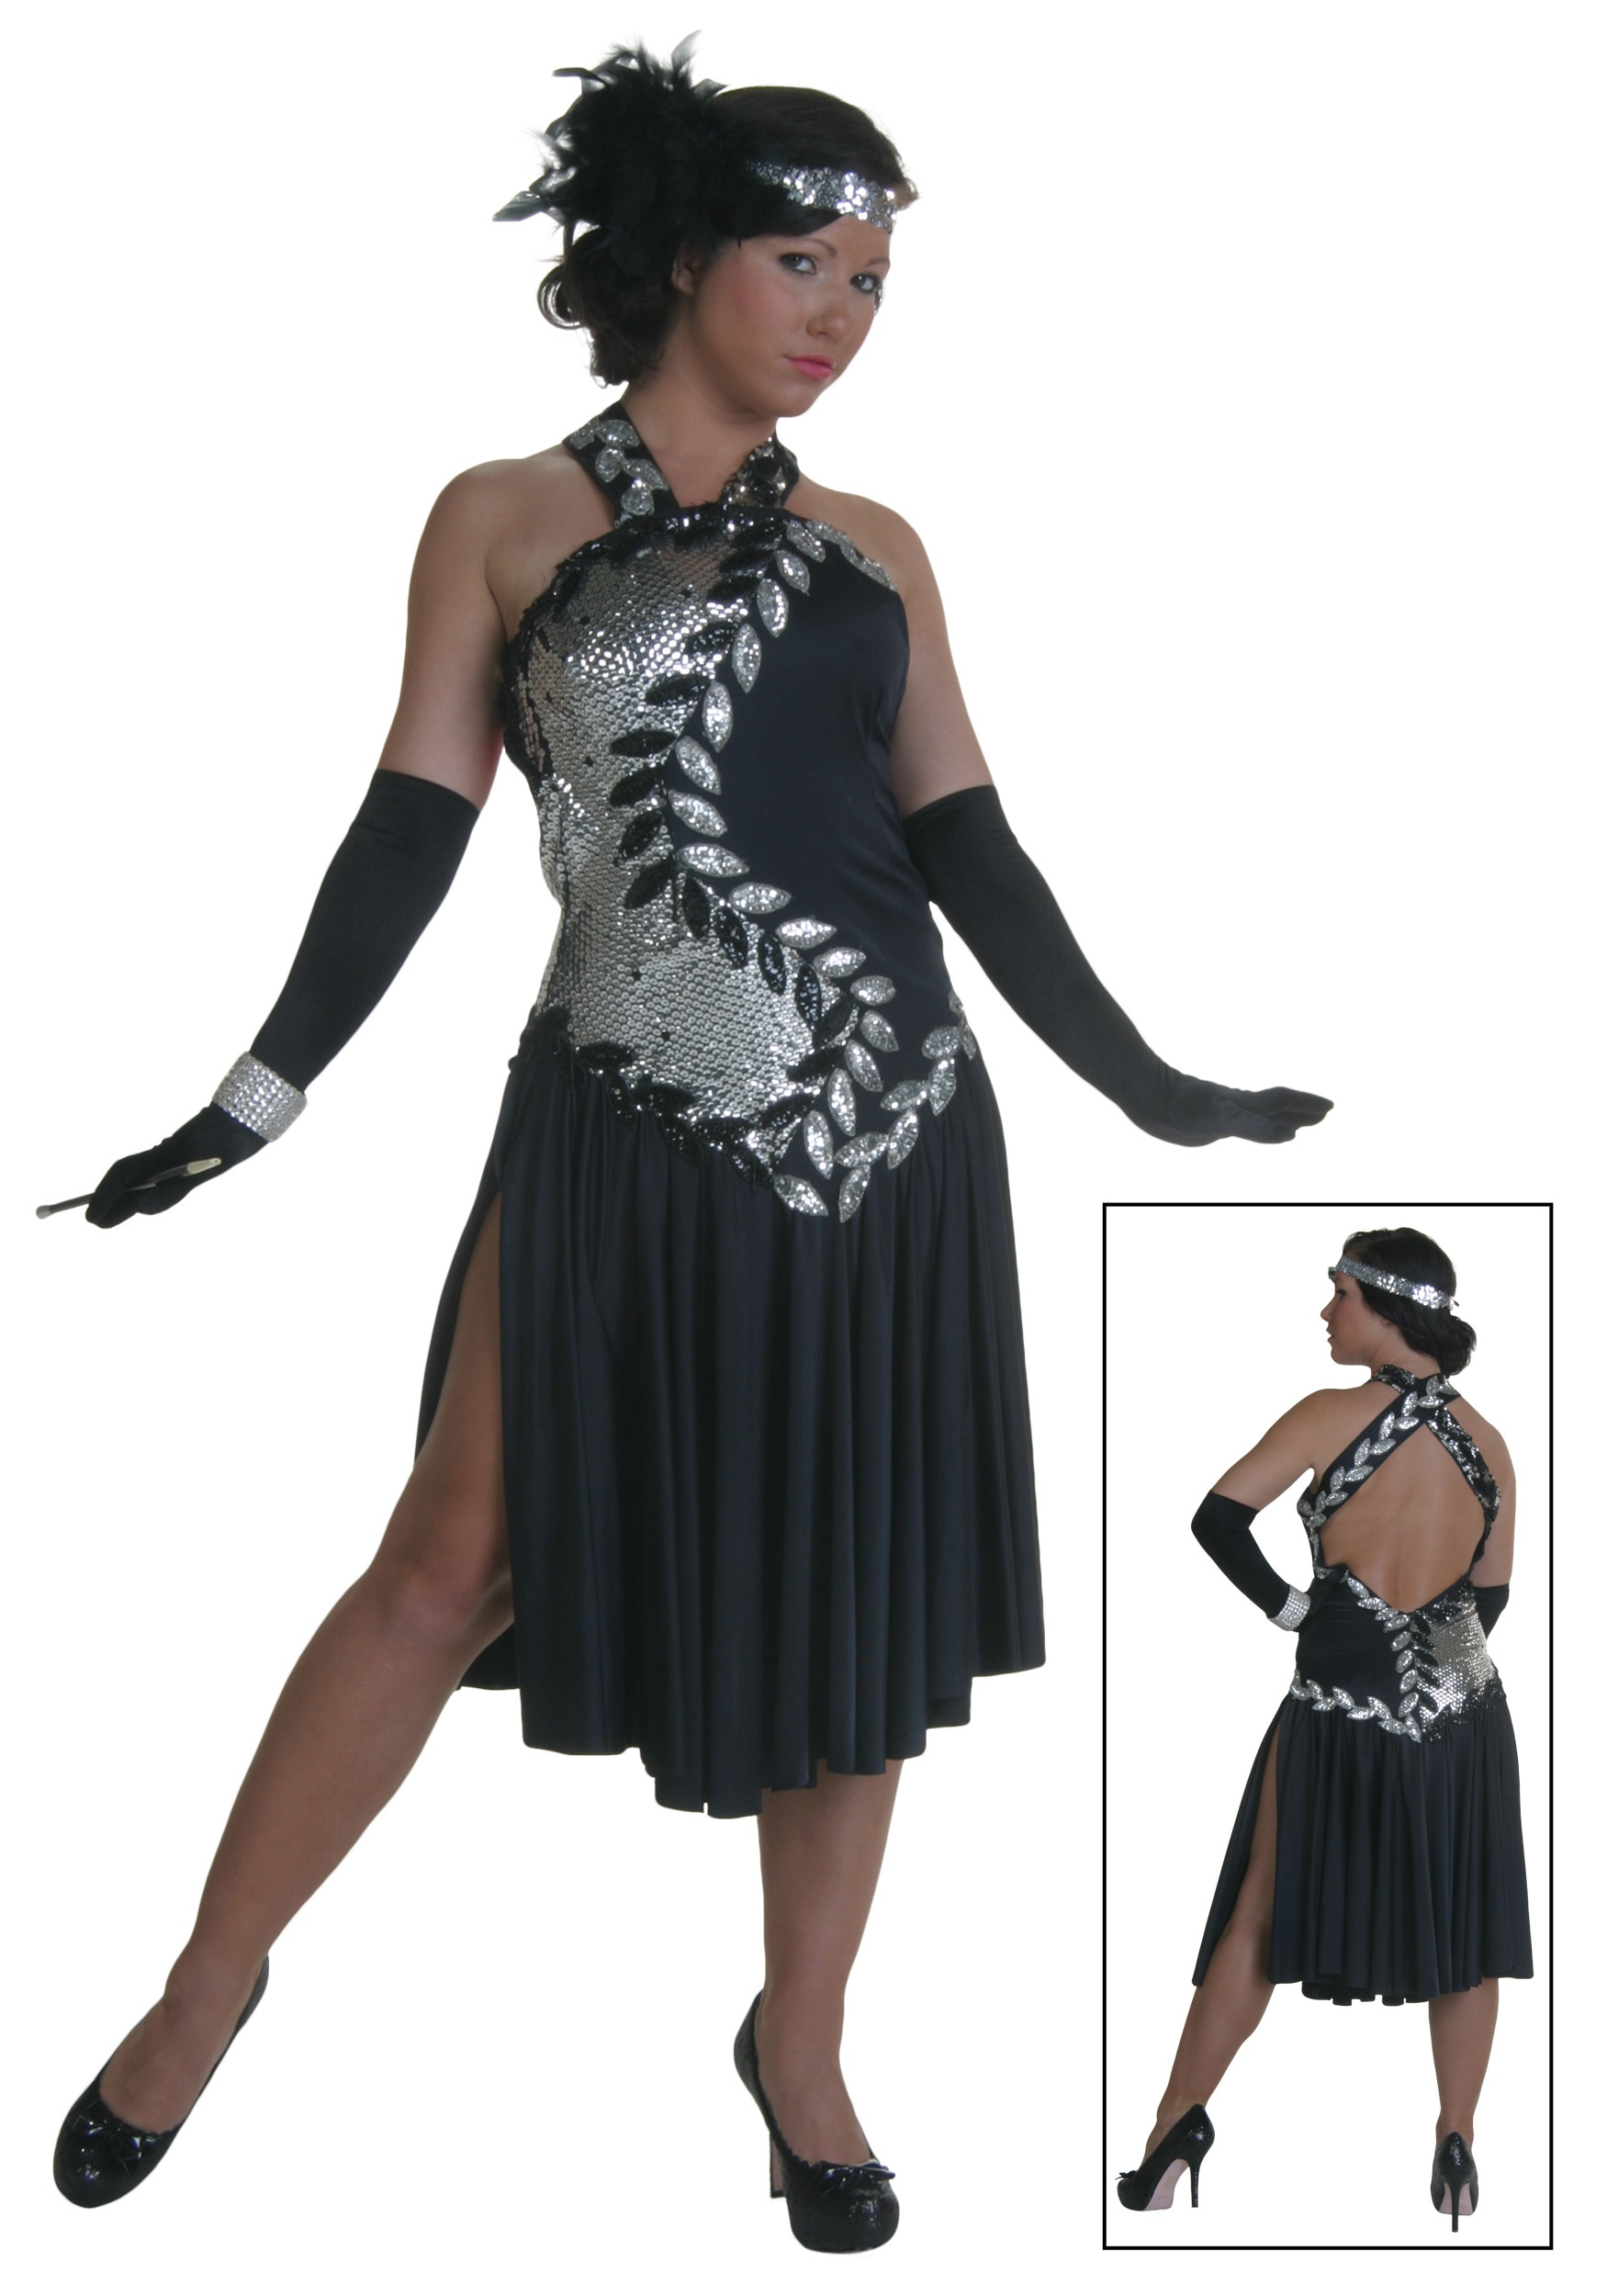 Black and Silver Flapper Costume - Adult Dance Costumes